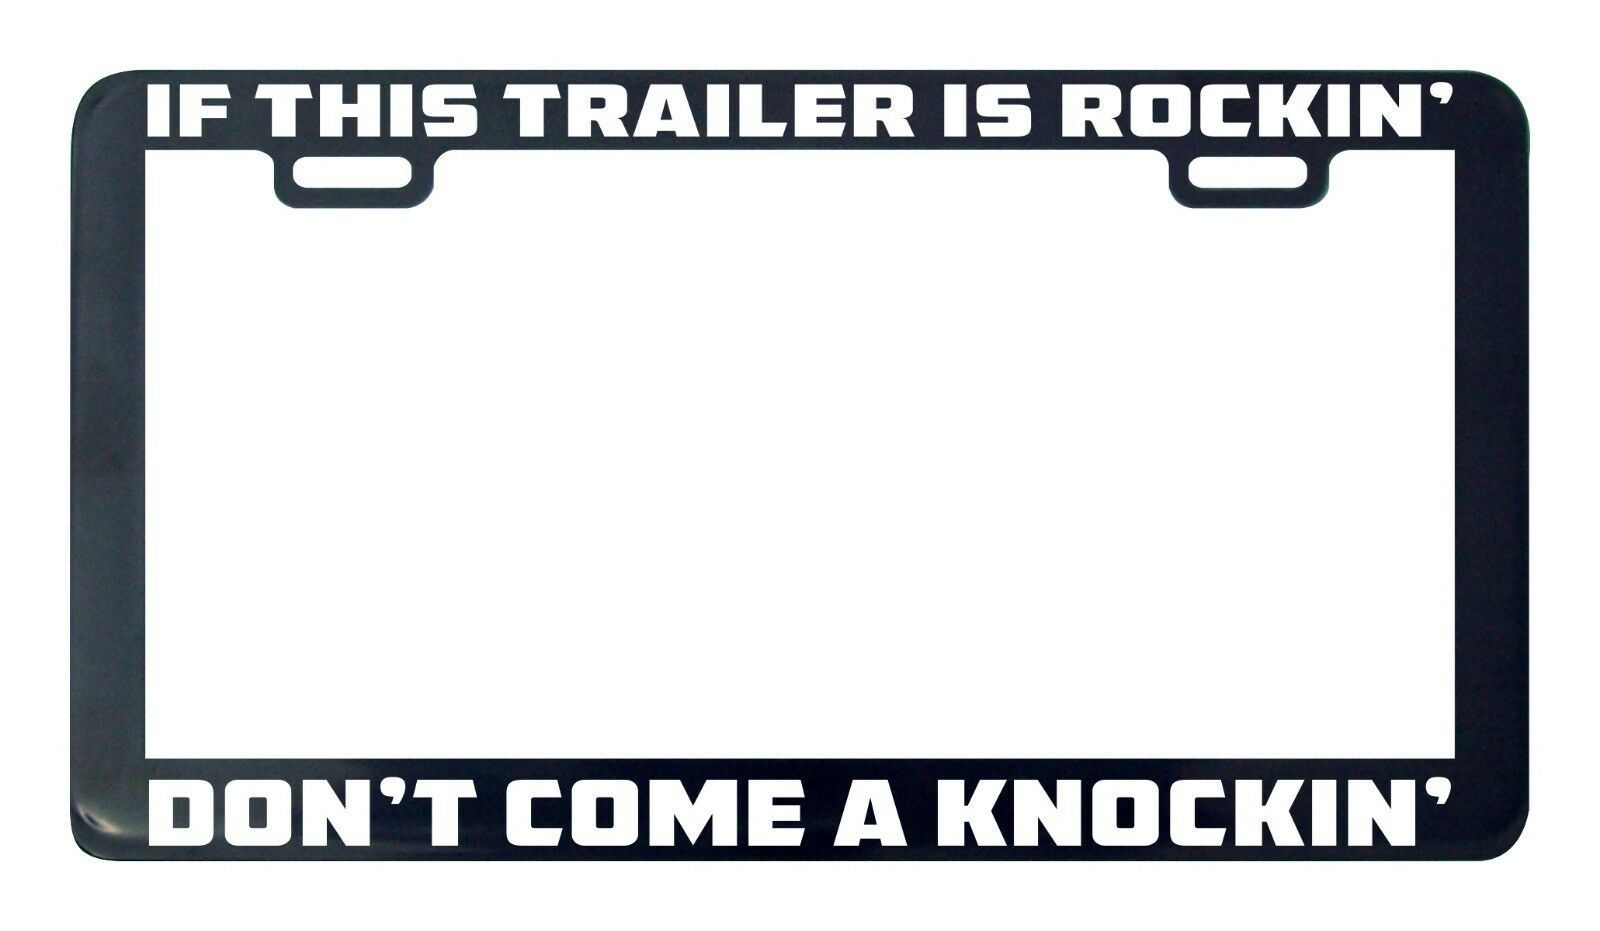 Primary image for If this trailer is rockin don't come knockin knocking license plate frame